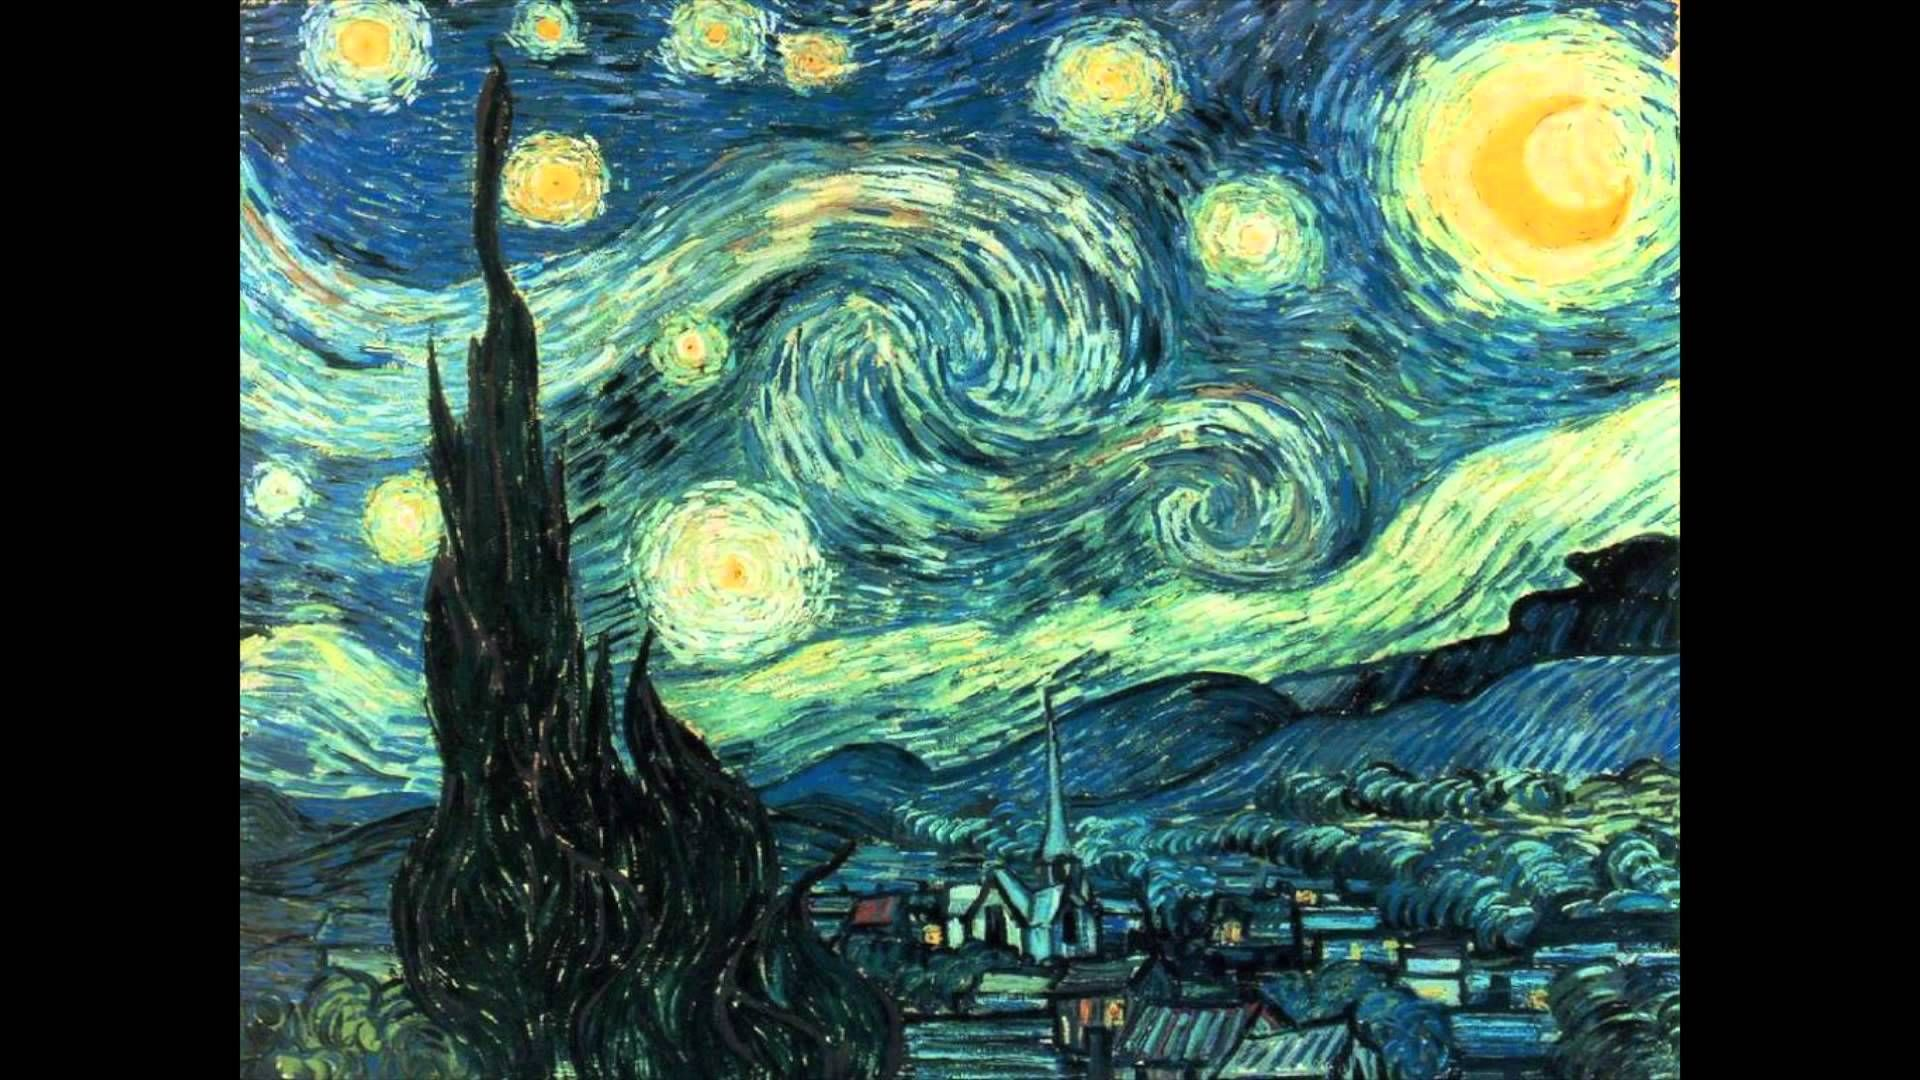 New World S Most Famous Paintings 1080p Hd Starry Night Van Gogh Gogh The Starry Night Van Gogh Art